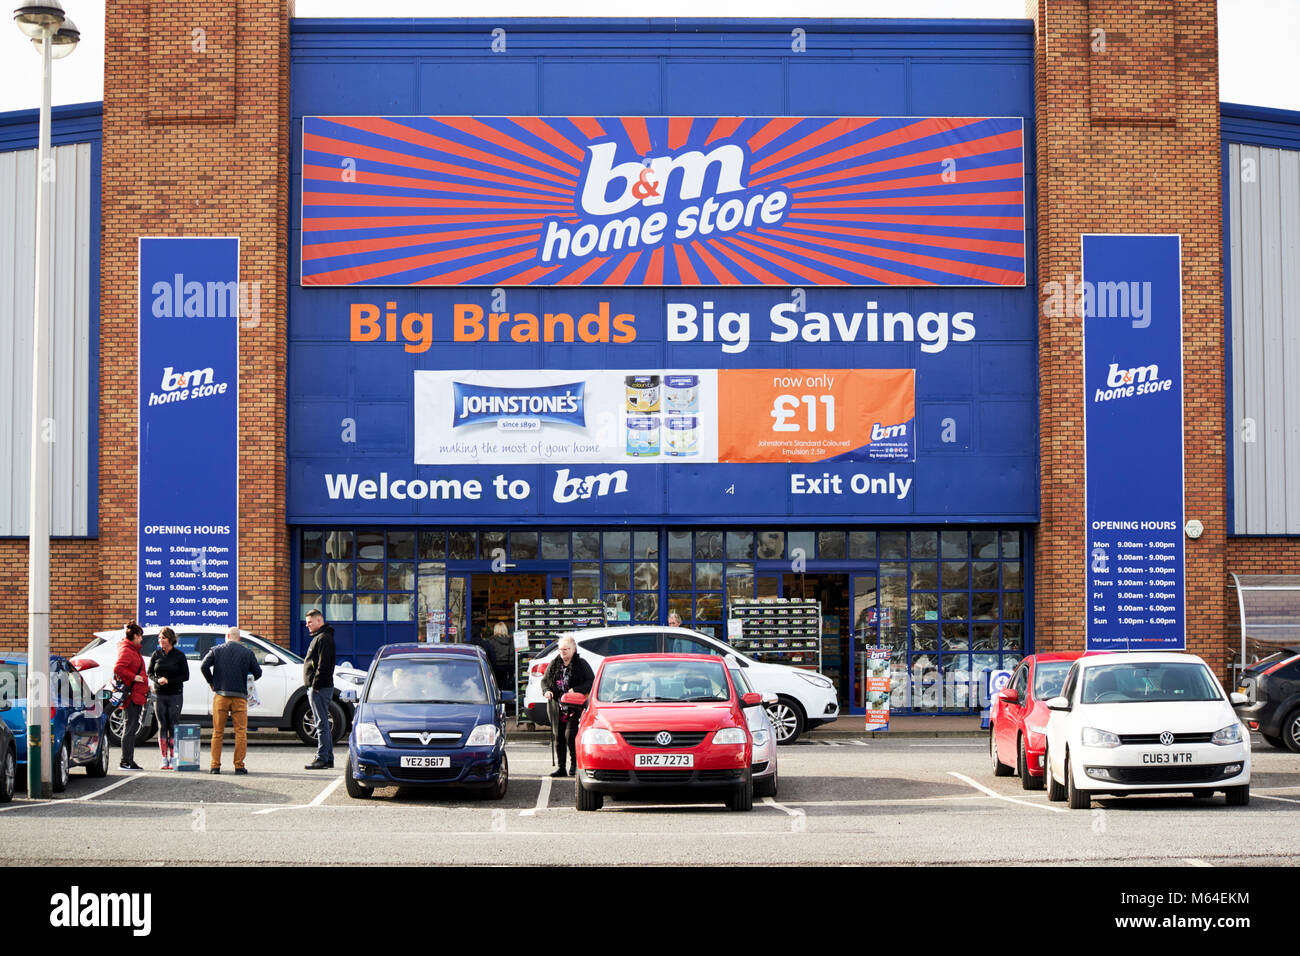 b&m home store large retail store in a retail park in the uk - Stock Image